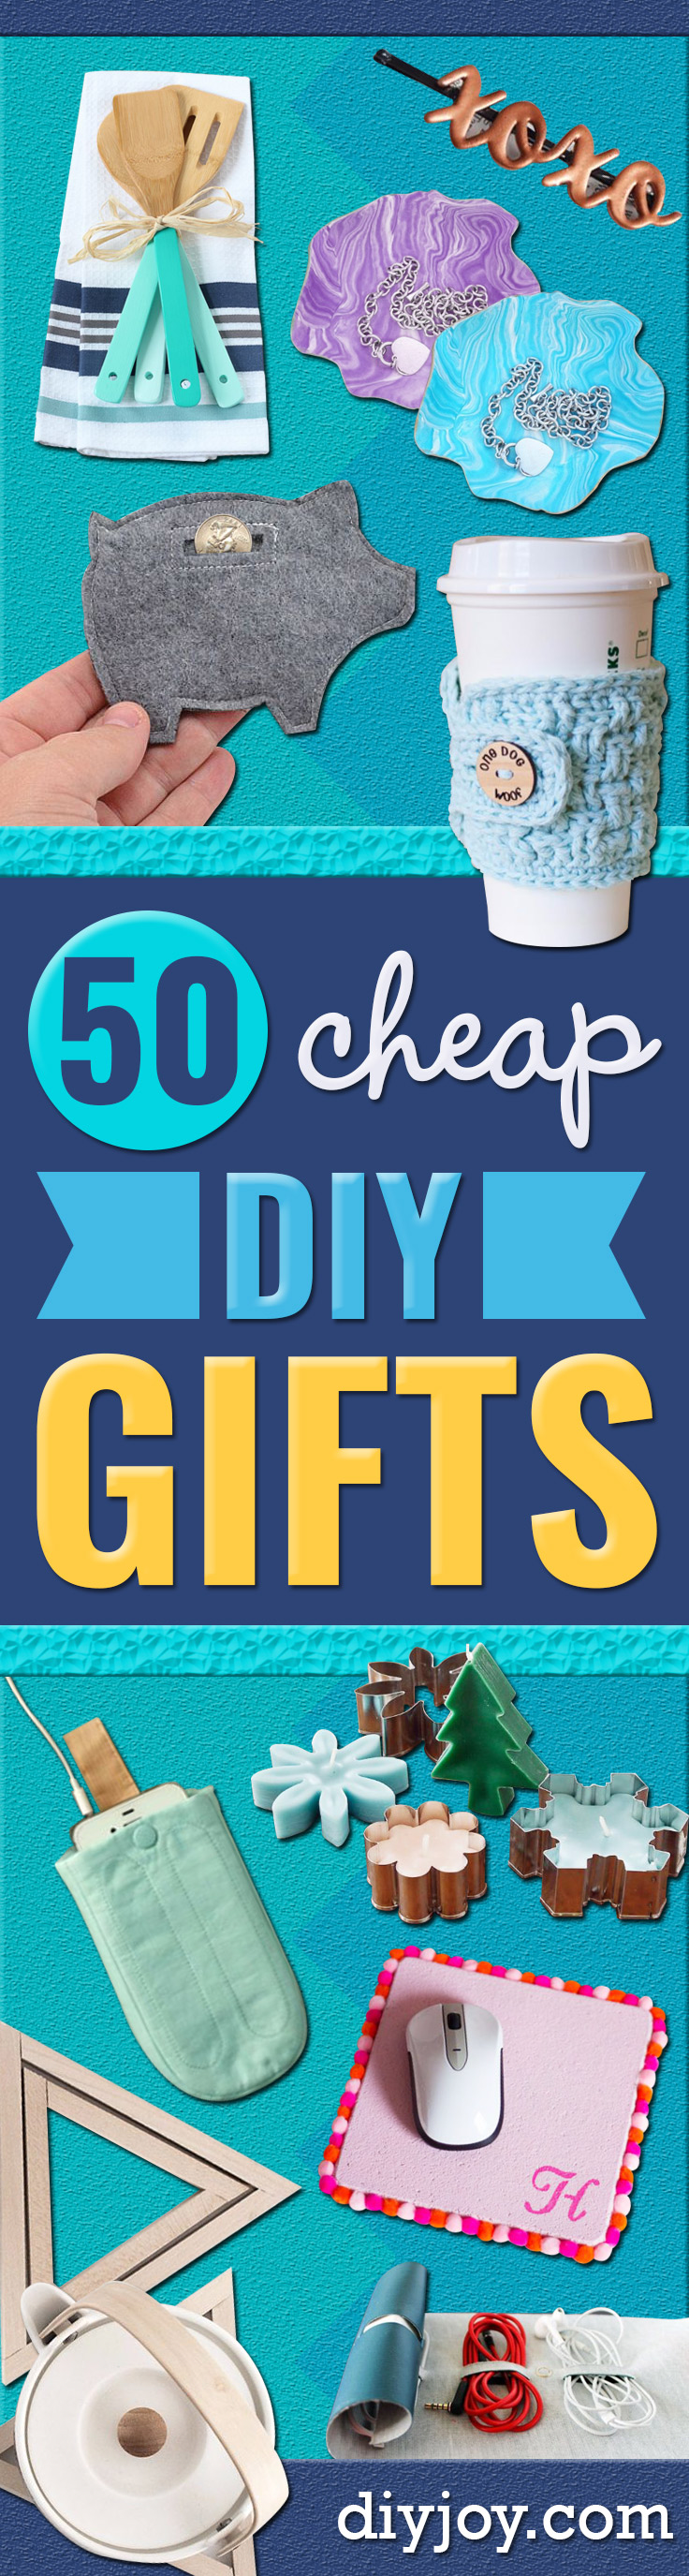 Cheap DIY Gifts and Inexpensive Homemade Christmas Gift Ideas for People on A Budget - To Make These Cool Presents Instead of Buying for the Holidays - Easy and Low Cost Gifts for Mom, Dad, Friends and Family - Quick Dollar Store Crafts and Projects for Xmas Gift Giving Parties - Step by Step Tutorials and Instructions http://diyjoy.com/cheap-holiday-gift-ideas-to-make